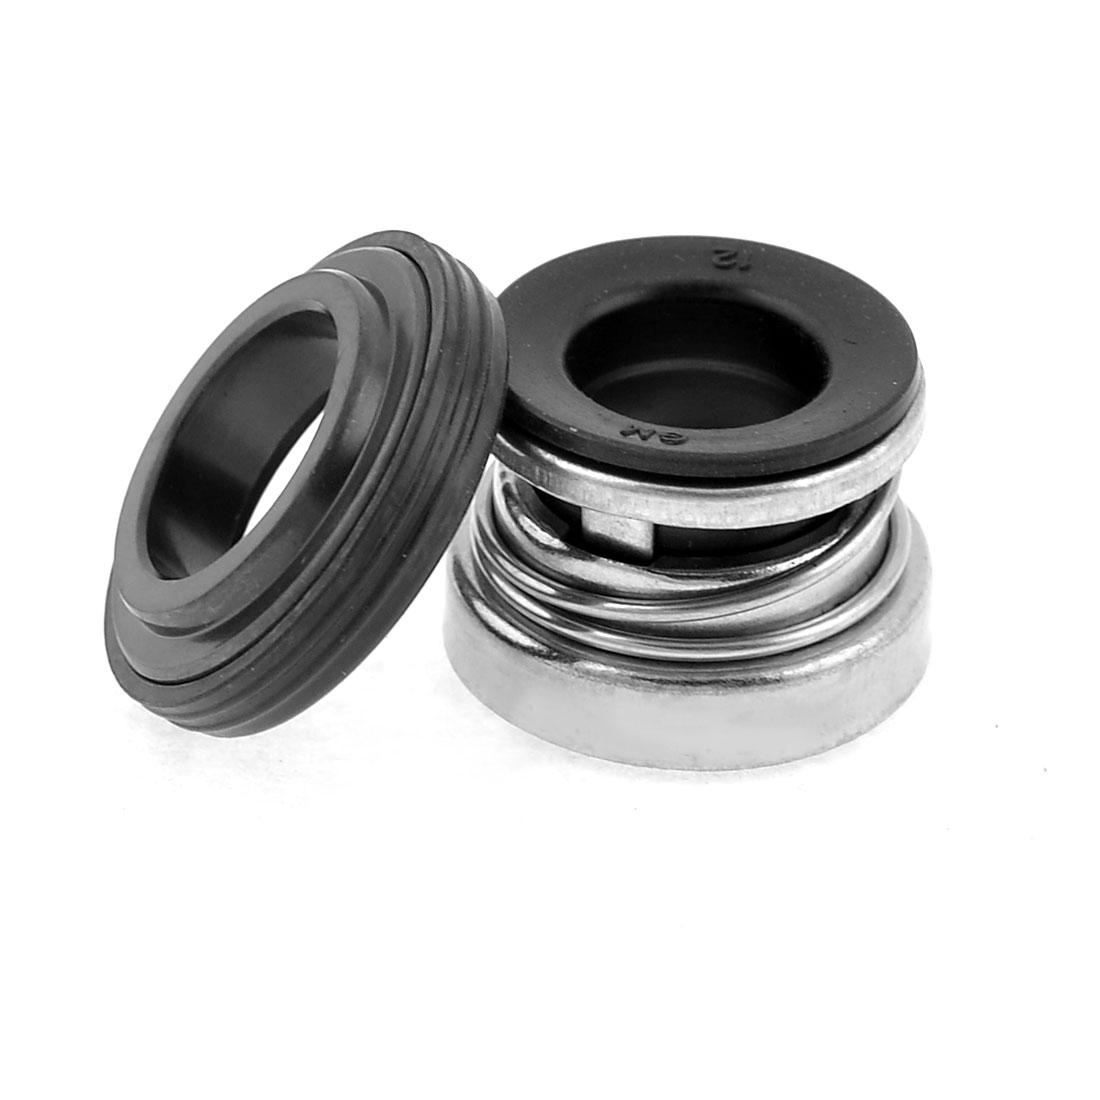 12mm Inner Diameter Single Spring Inbuilt Mechanical Seal 21mm High